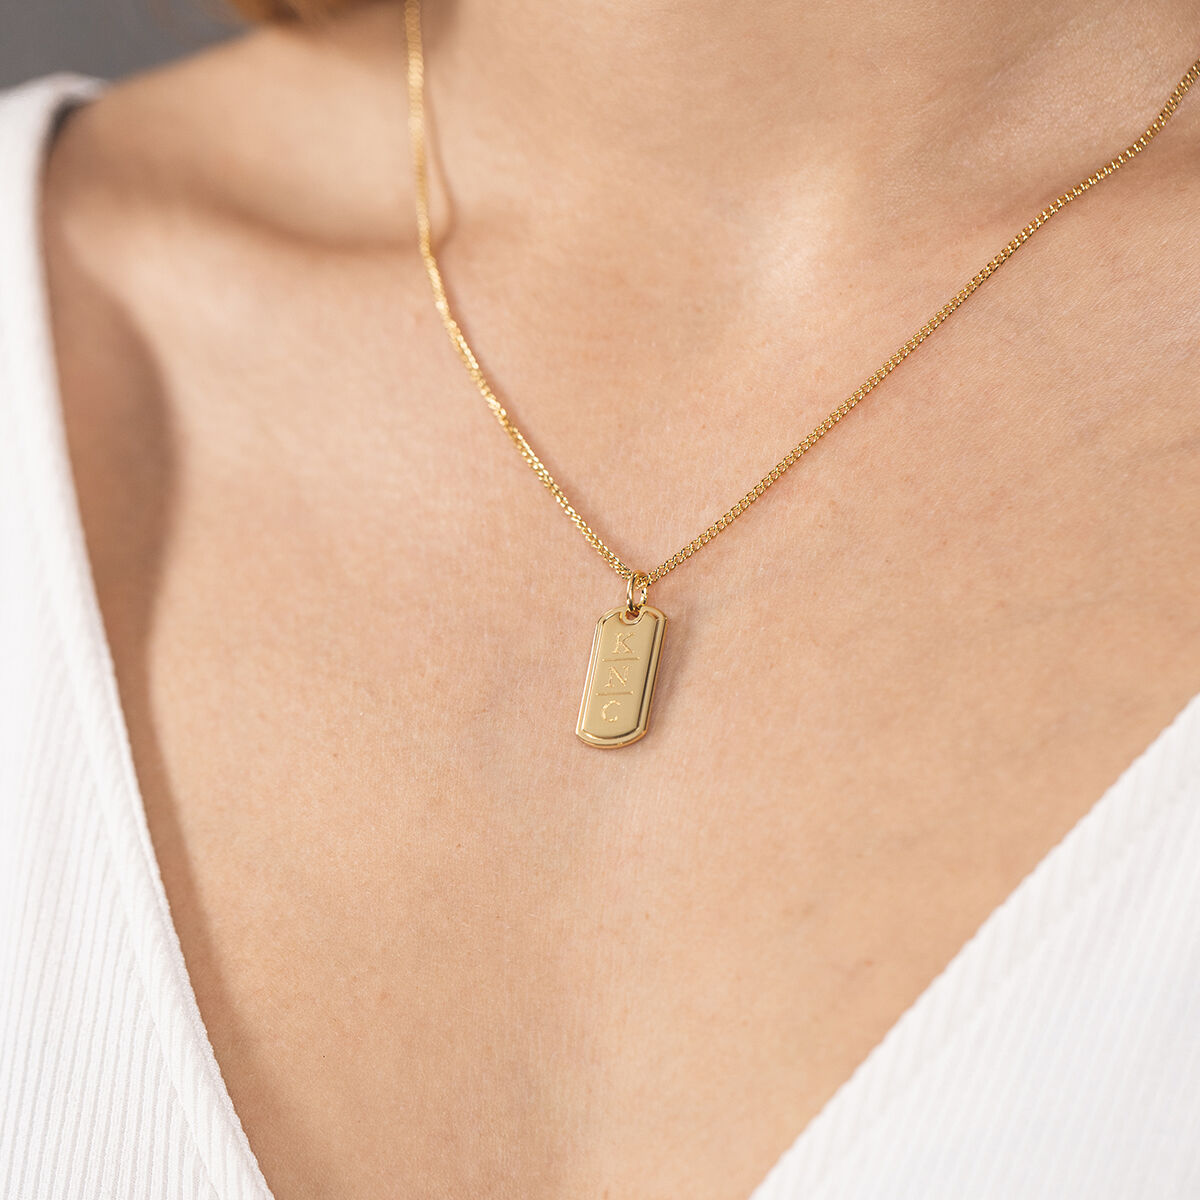 Tag necklace gold model